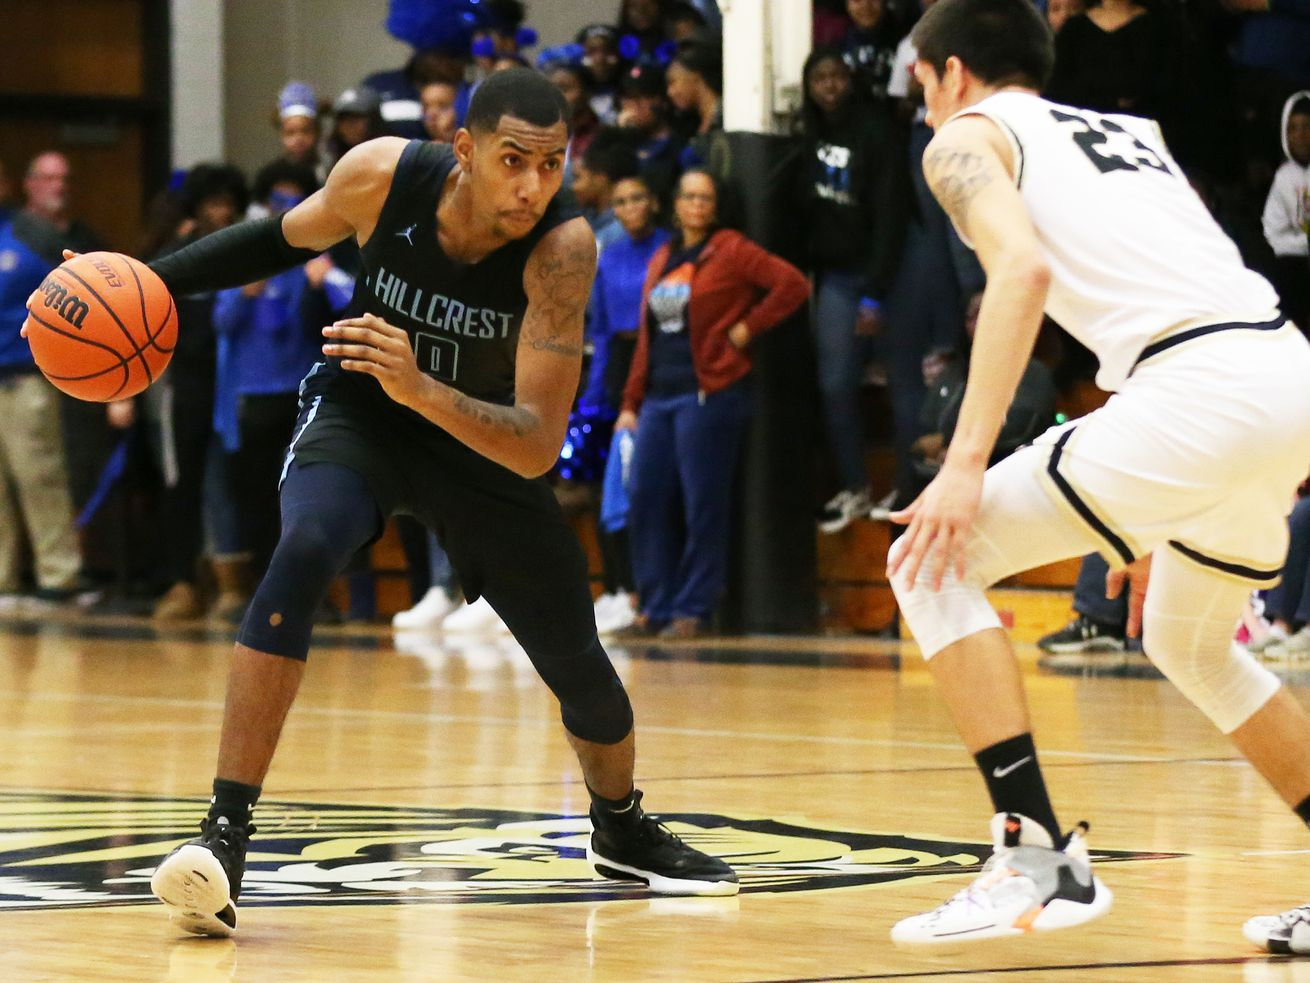 Hillcrest's Julius Rollins (0) controls the ball as Oak Forest's Juan Avila defends. Rollins is expected to sign with Kent State this week.